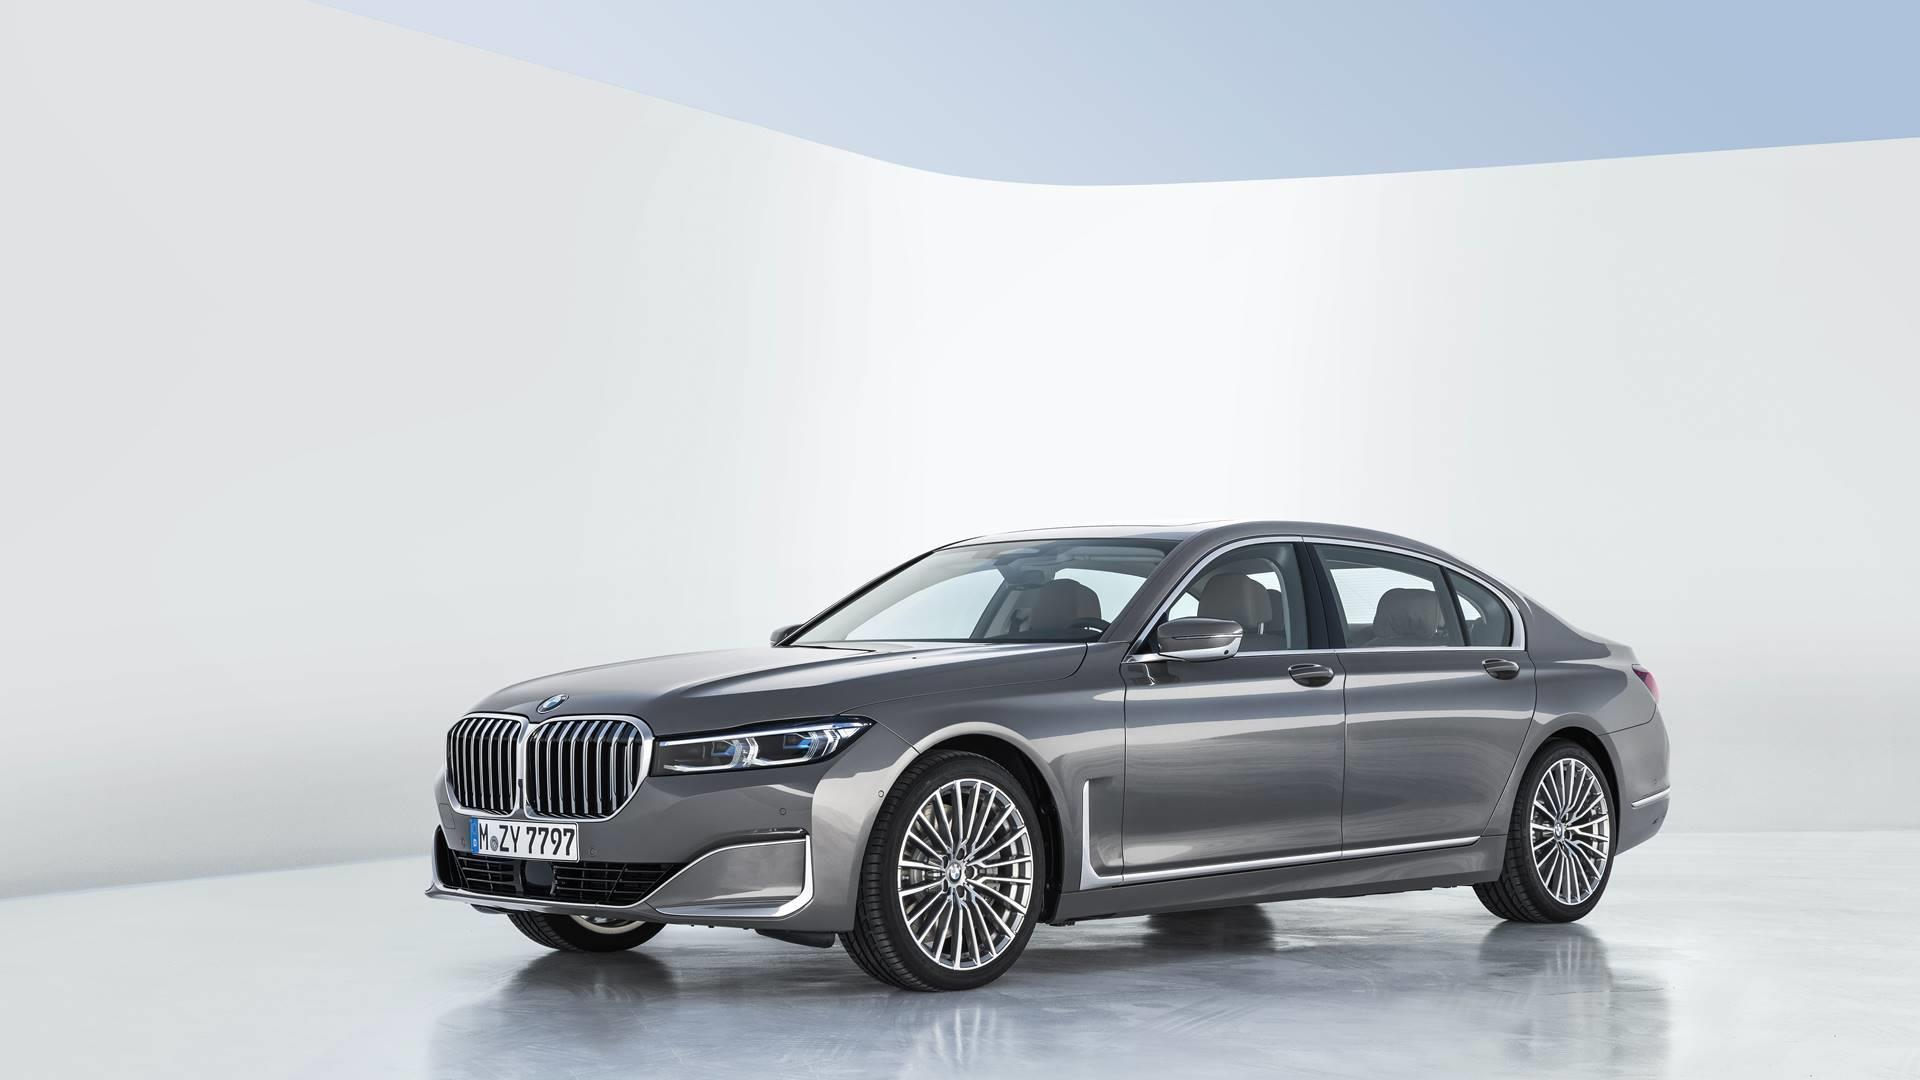 2020 Bmw 7 Series Technical And Mechanical Specifications